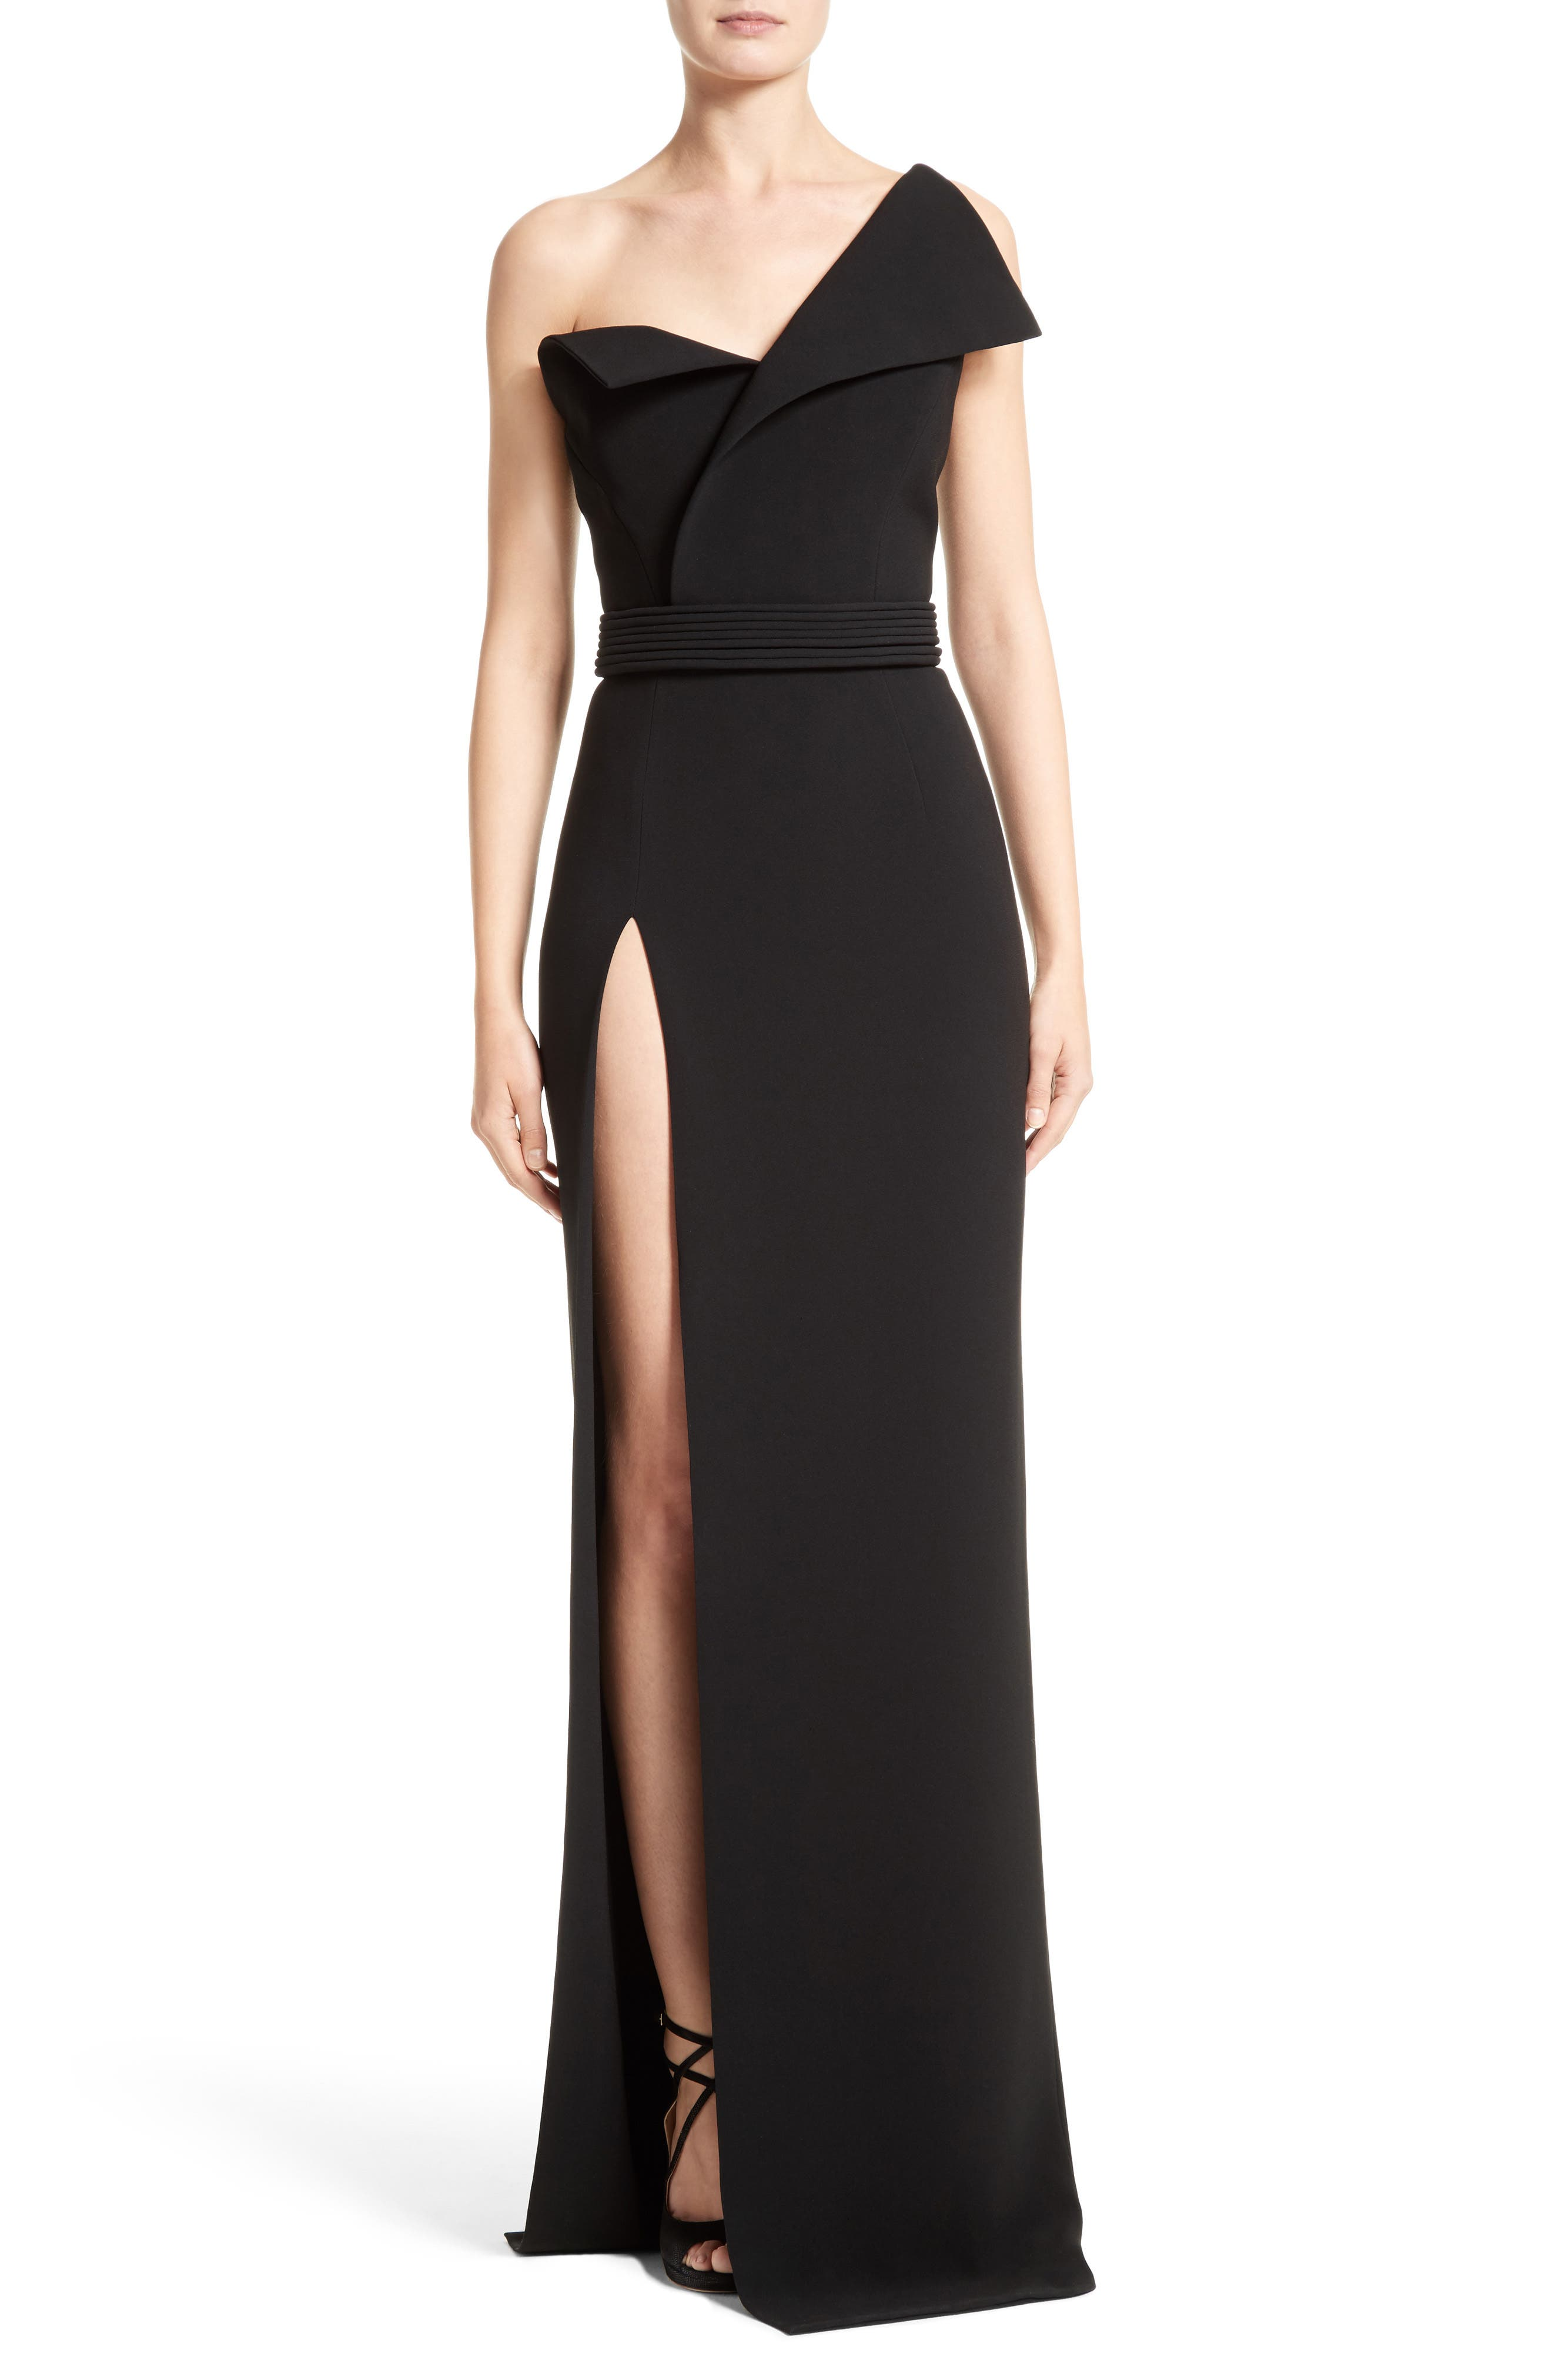 Alternate Image 1 Selected - Brandon Maxwell Belted Foldover Neck Gown with High Slit